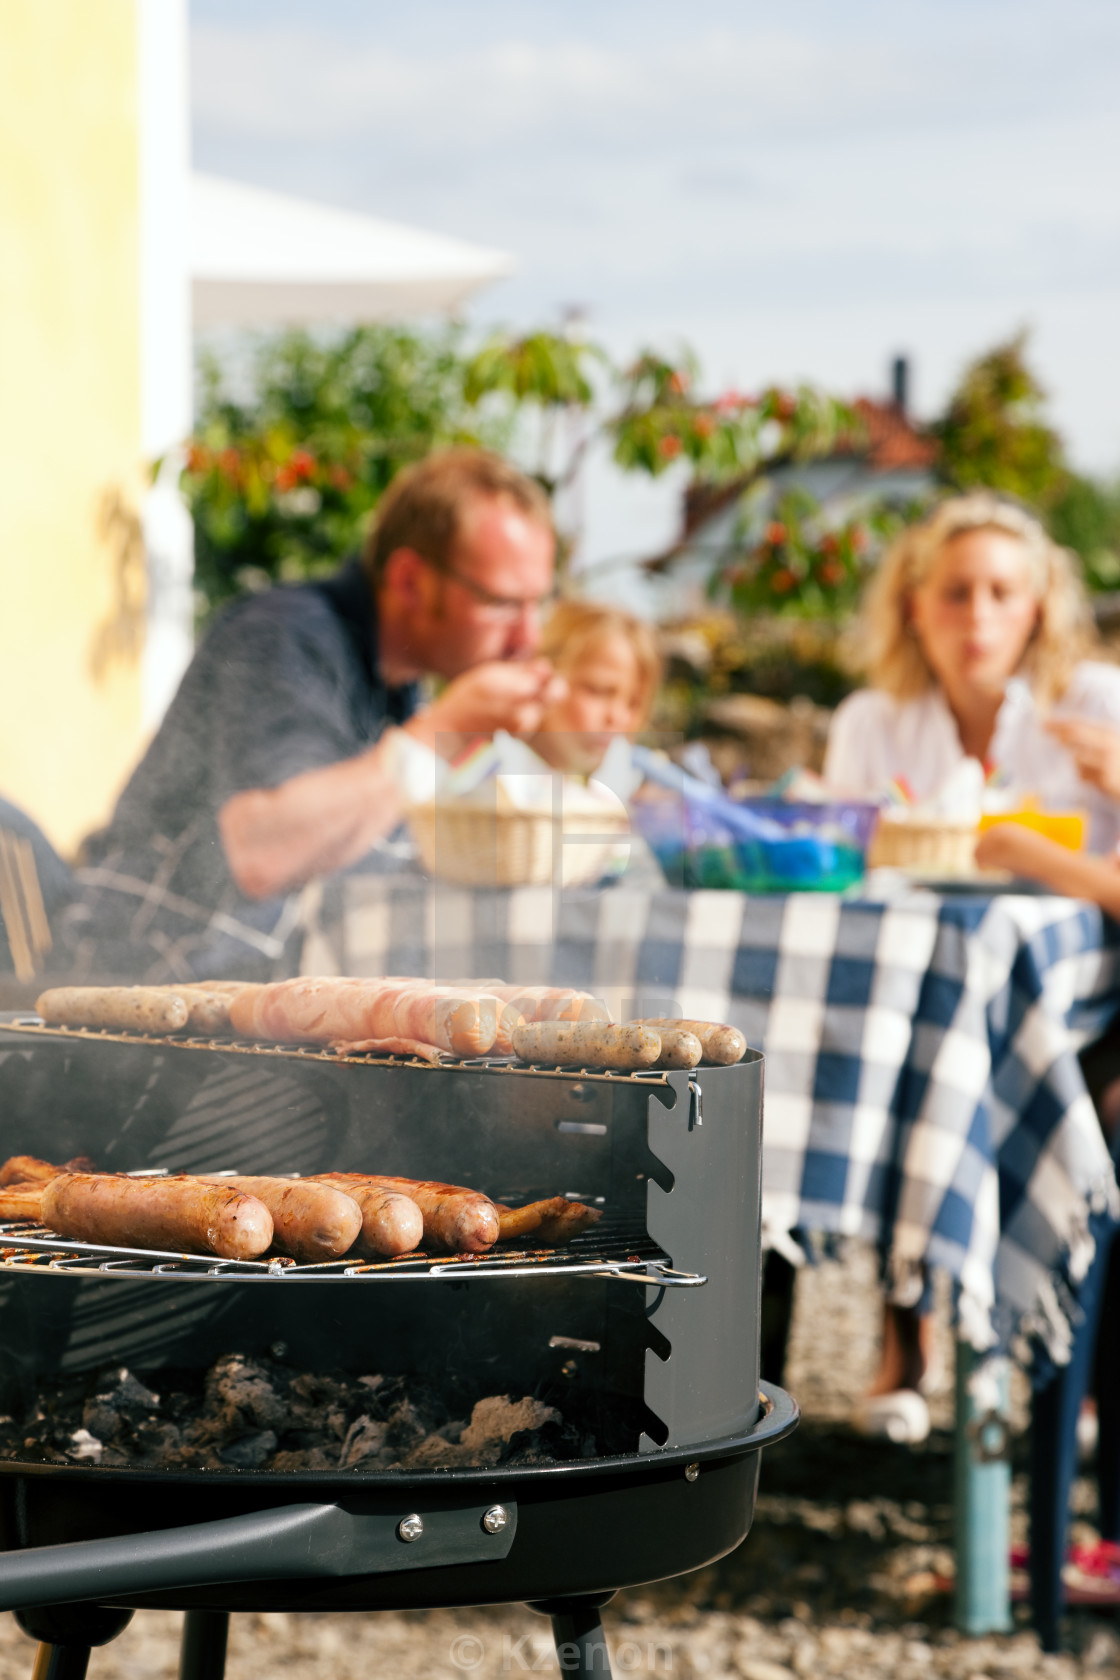 Family having a barbecue party - License, download or print